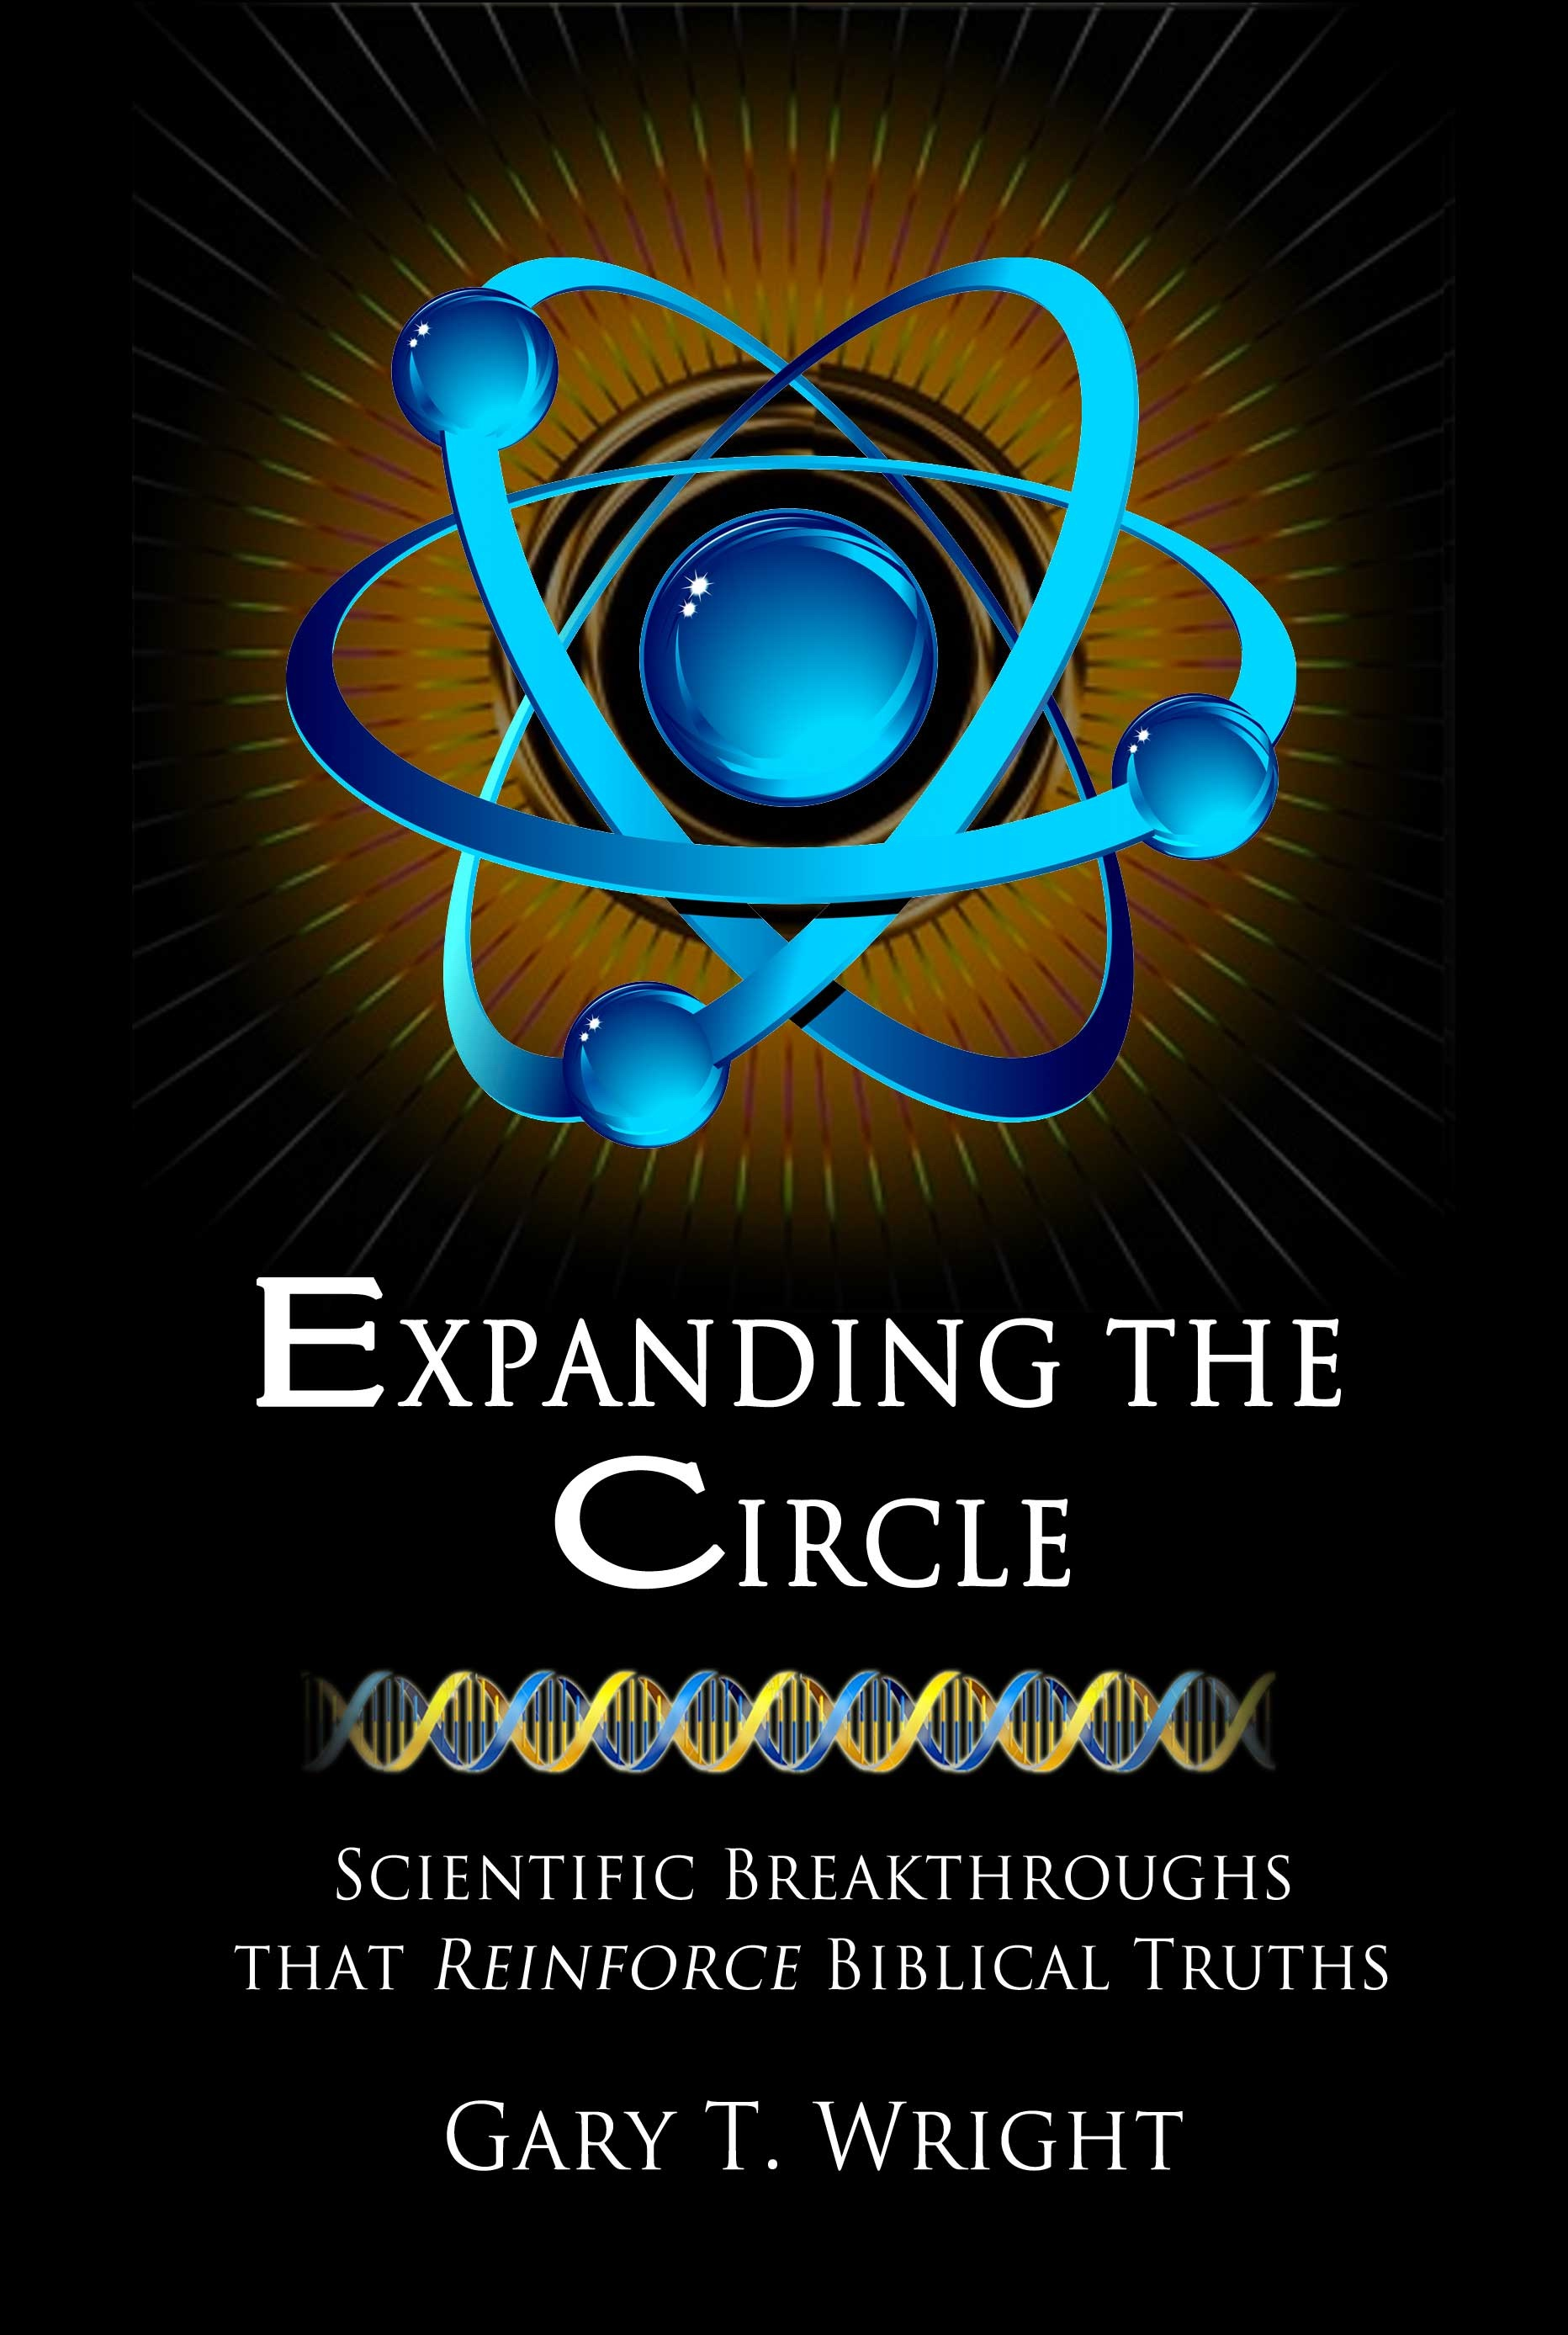 Image for Expanding the Circle; Scientific Breakthroughs Reinforce Biblical Truths